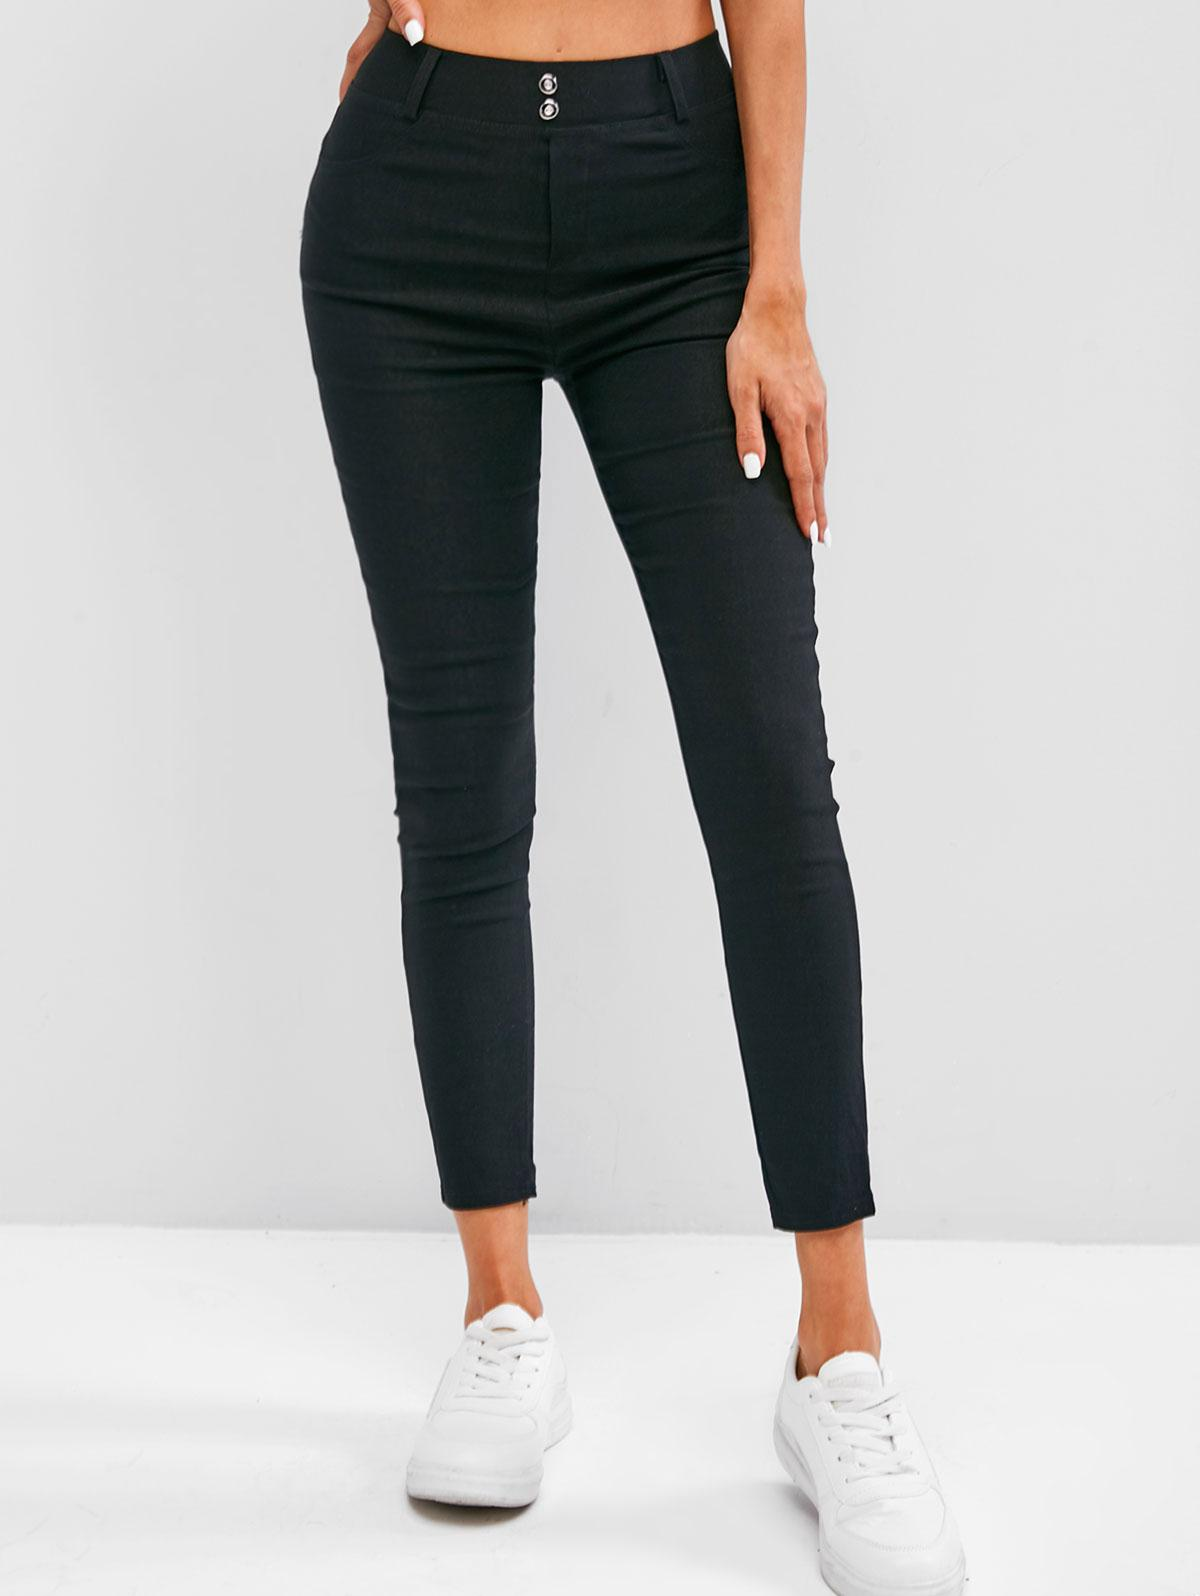 Patched Pocket High Stretchy Slim Leggings